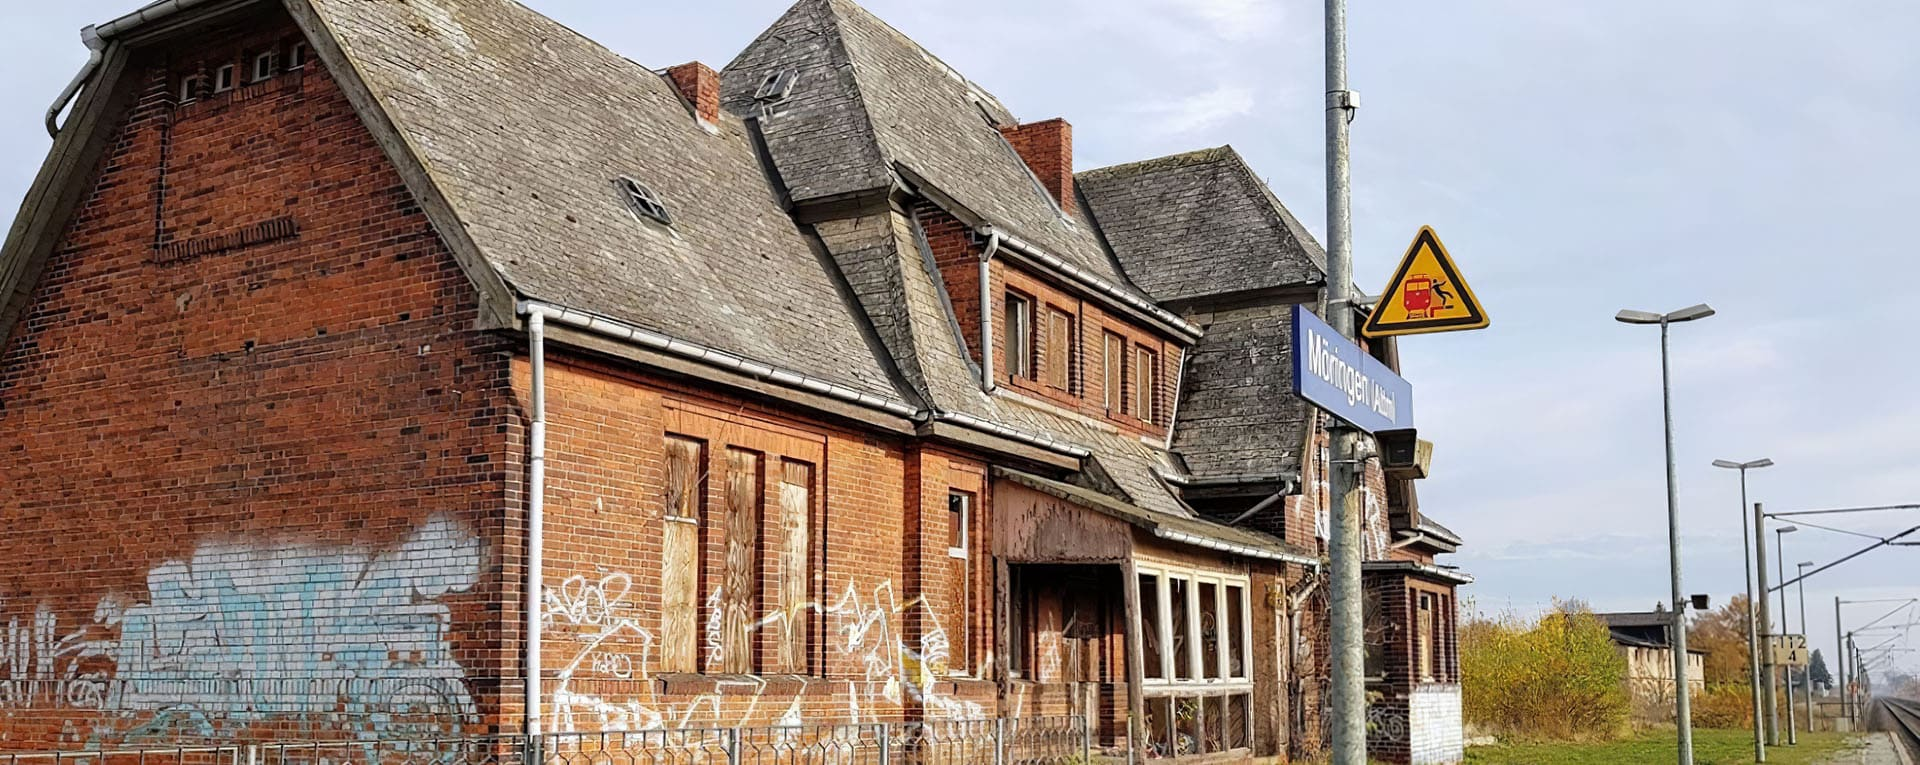 Large former railway station building for sale